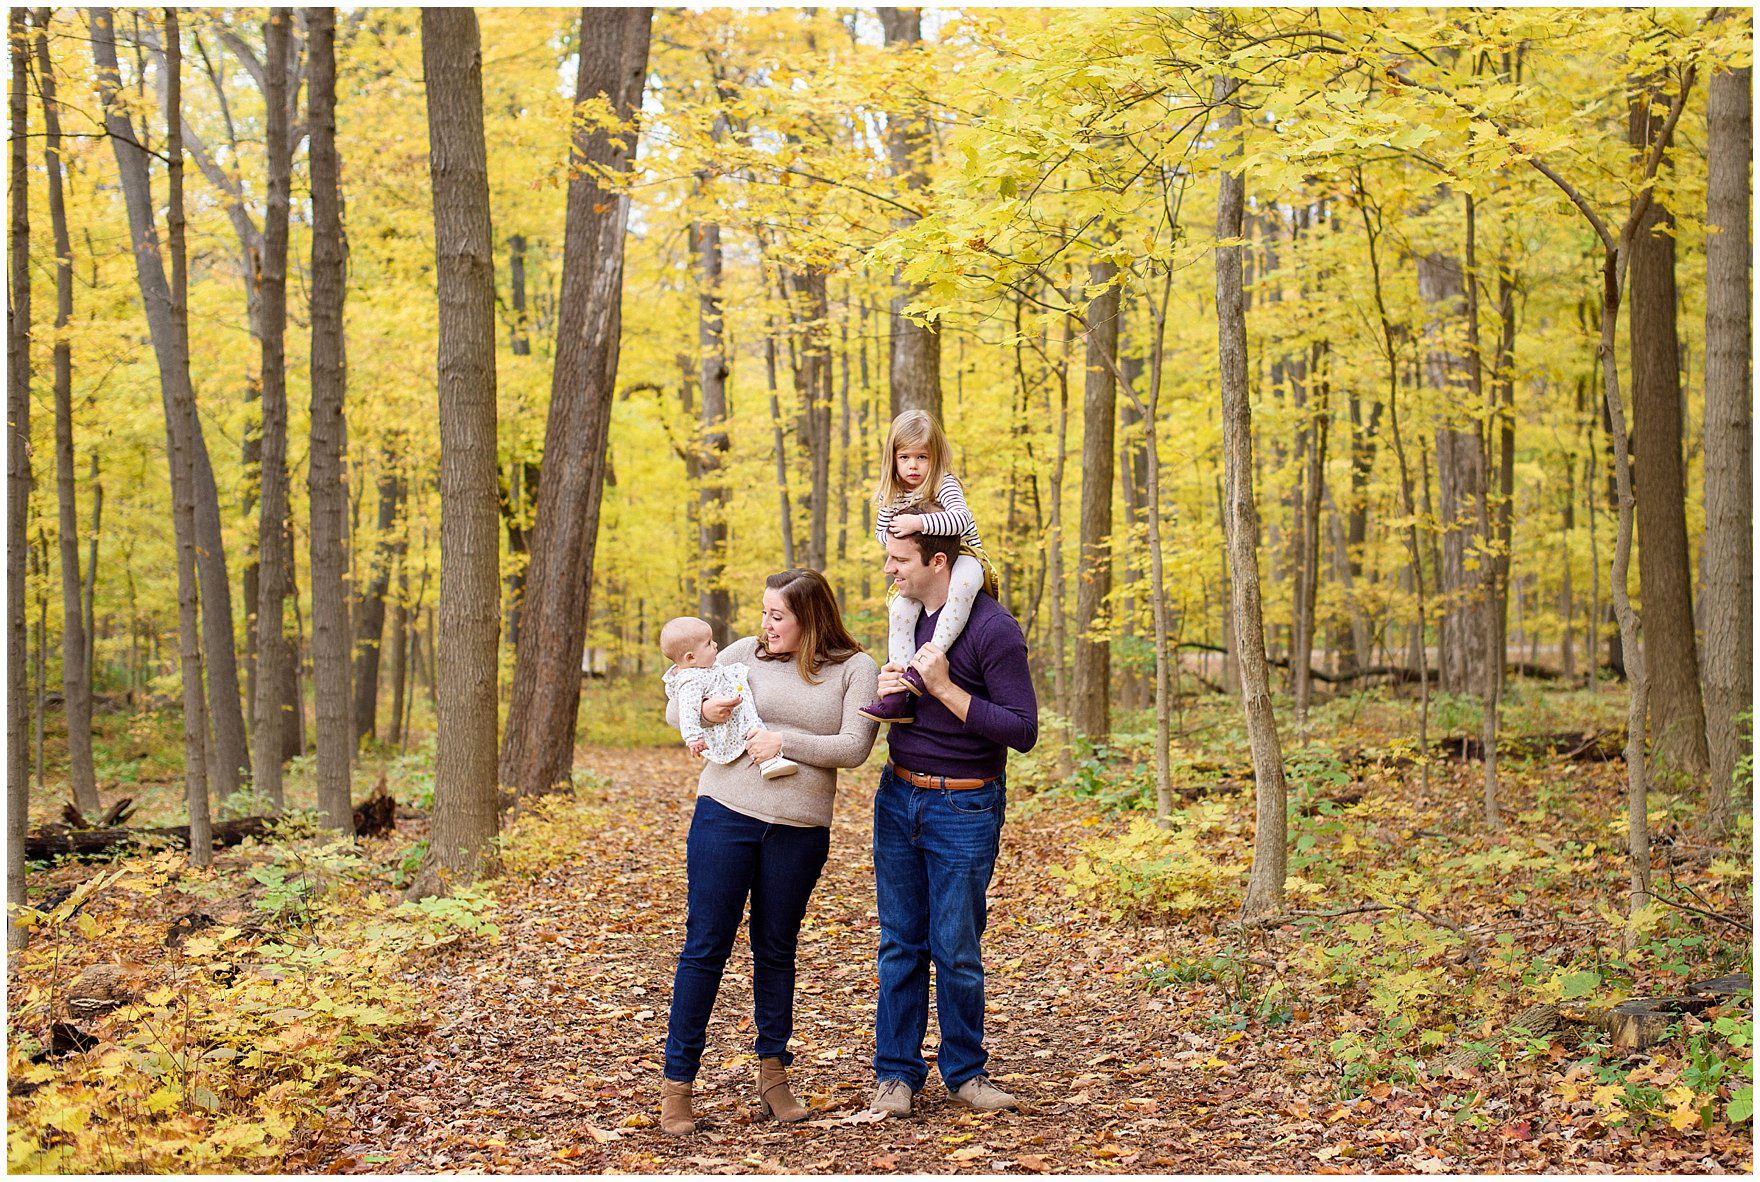 A family walks through a forest of golden leaves during a Morton Arboretum fall family session.